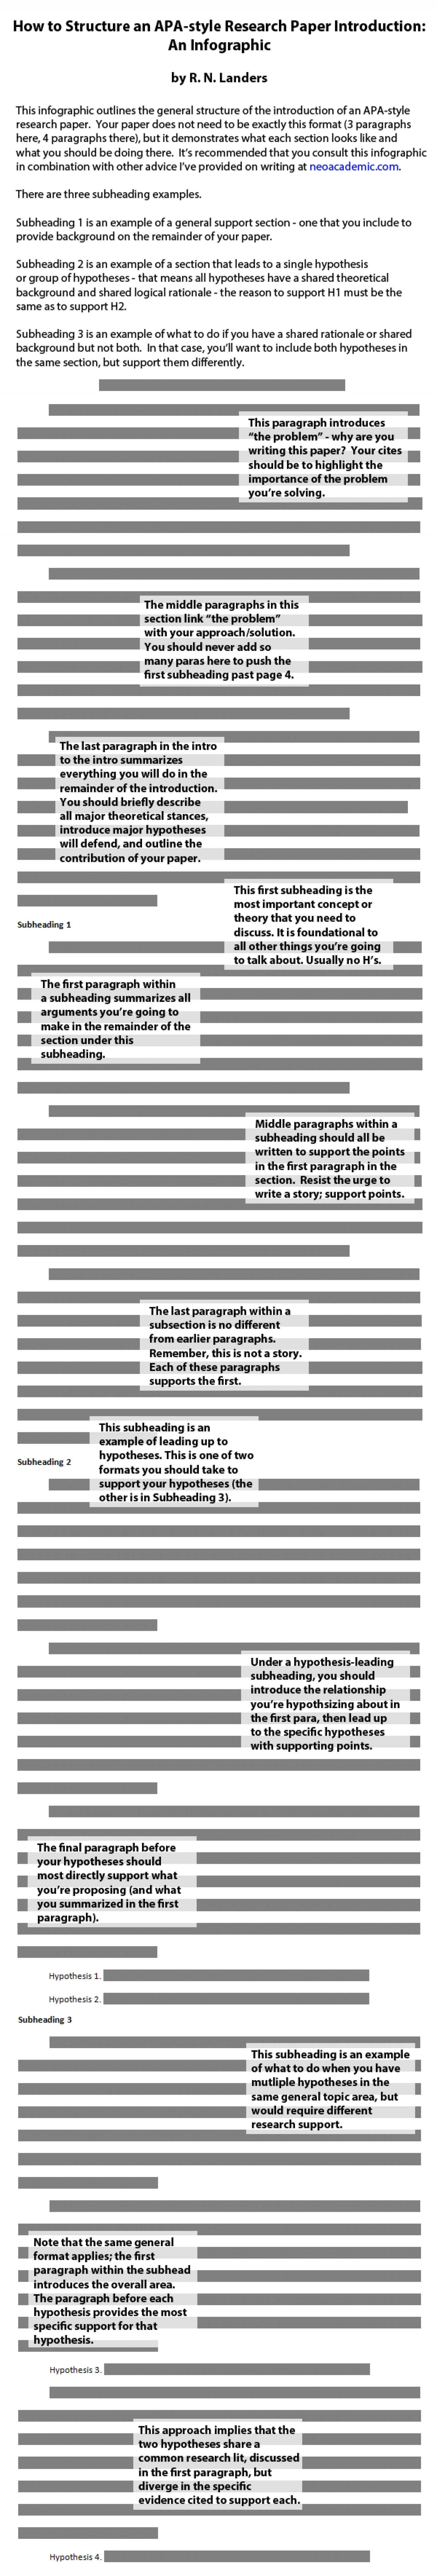 002 Intro Infographic2 Research Paper Introduction Of Best A Apa For An Format 1920